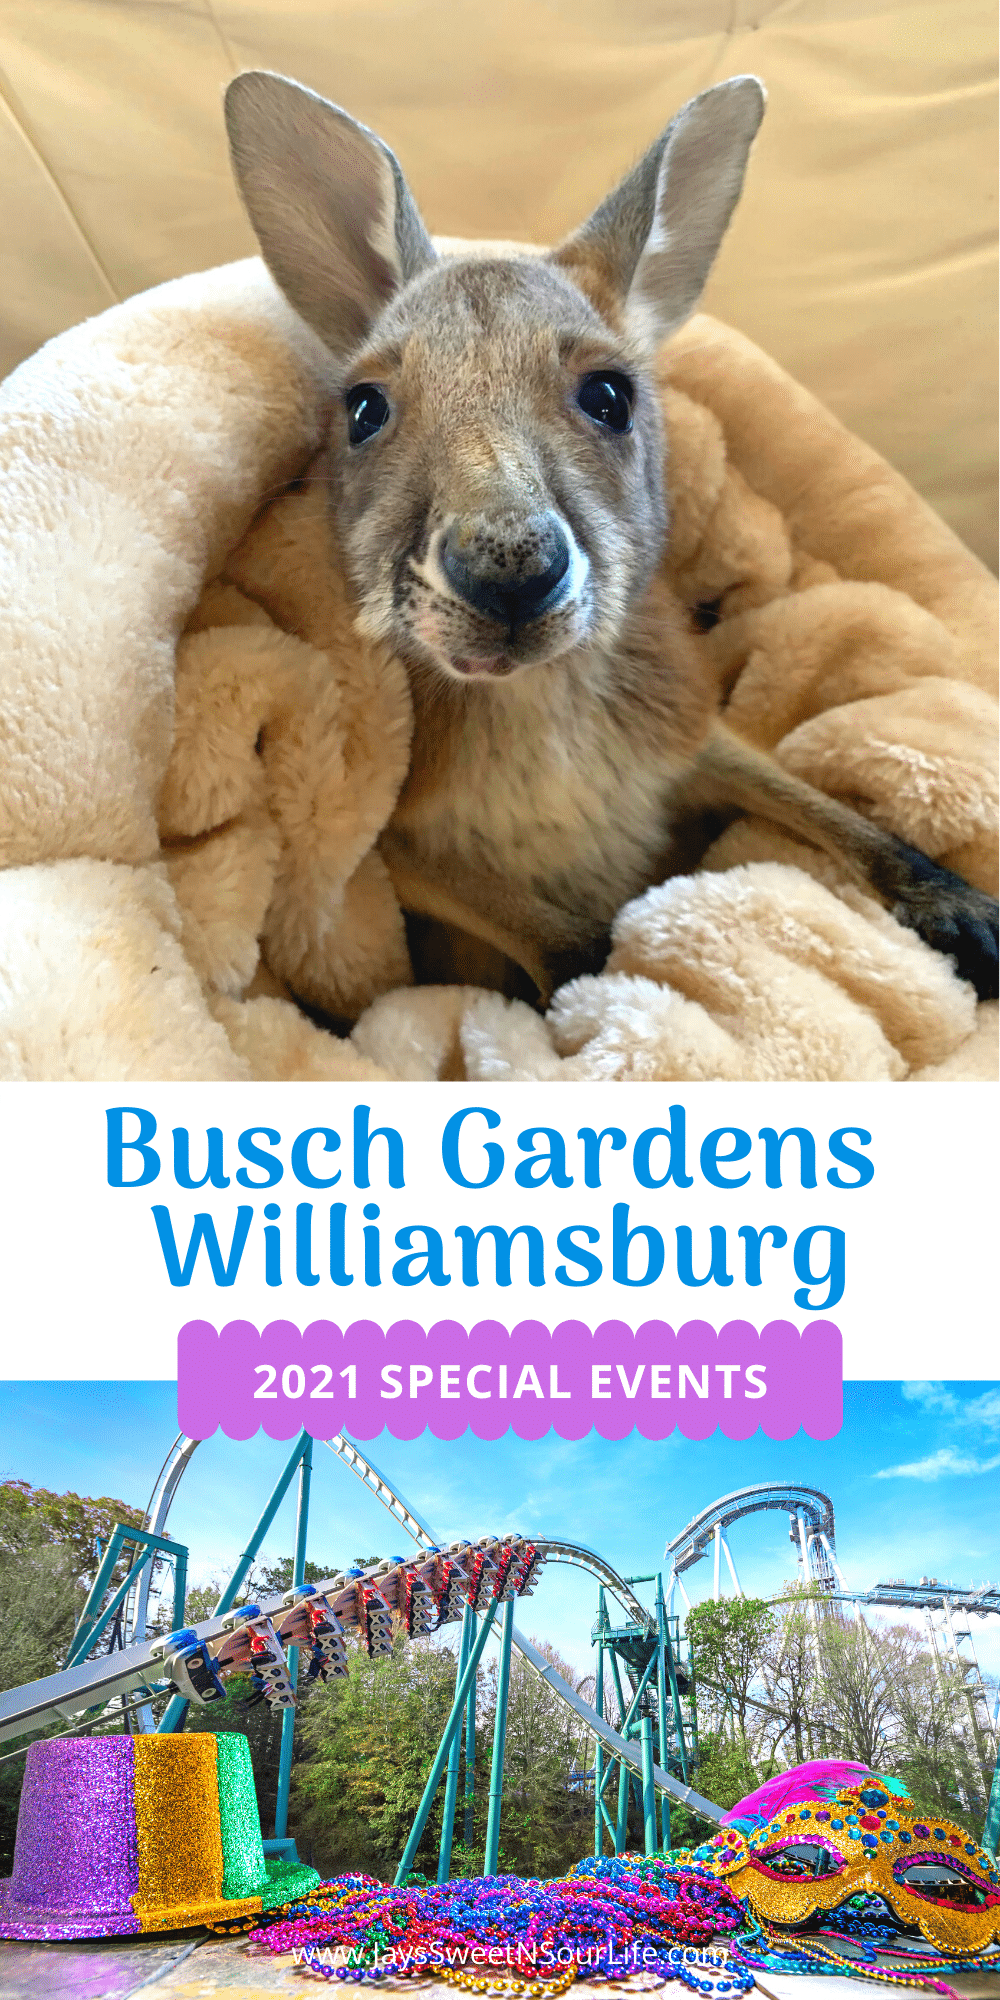 Busch Gardens Williamsburg 2021 Special Events. Enjoy the new Busch Gardens Williamsburg 2021 special events that offer socially distanced fun and entertainment all year long. Busch Gardens will be the place for all things fun, new, and safe in 2021.